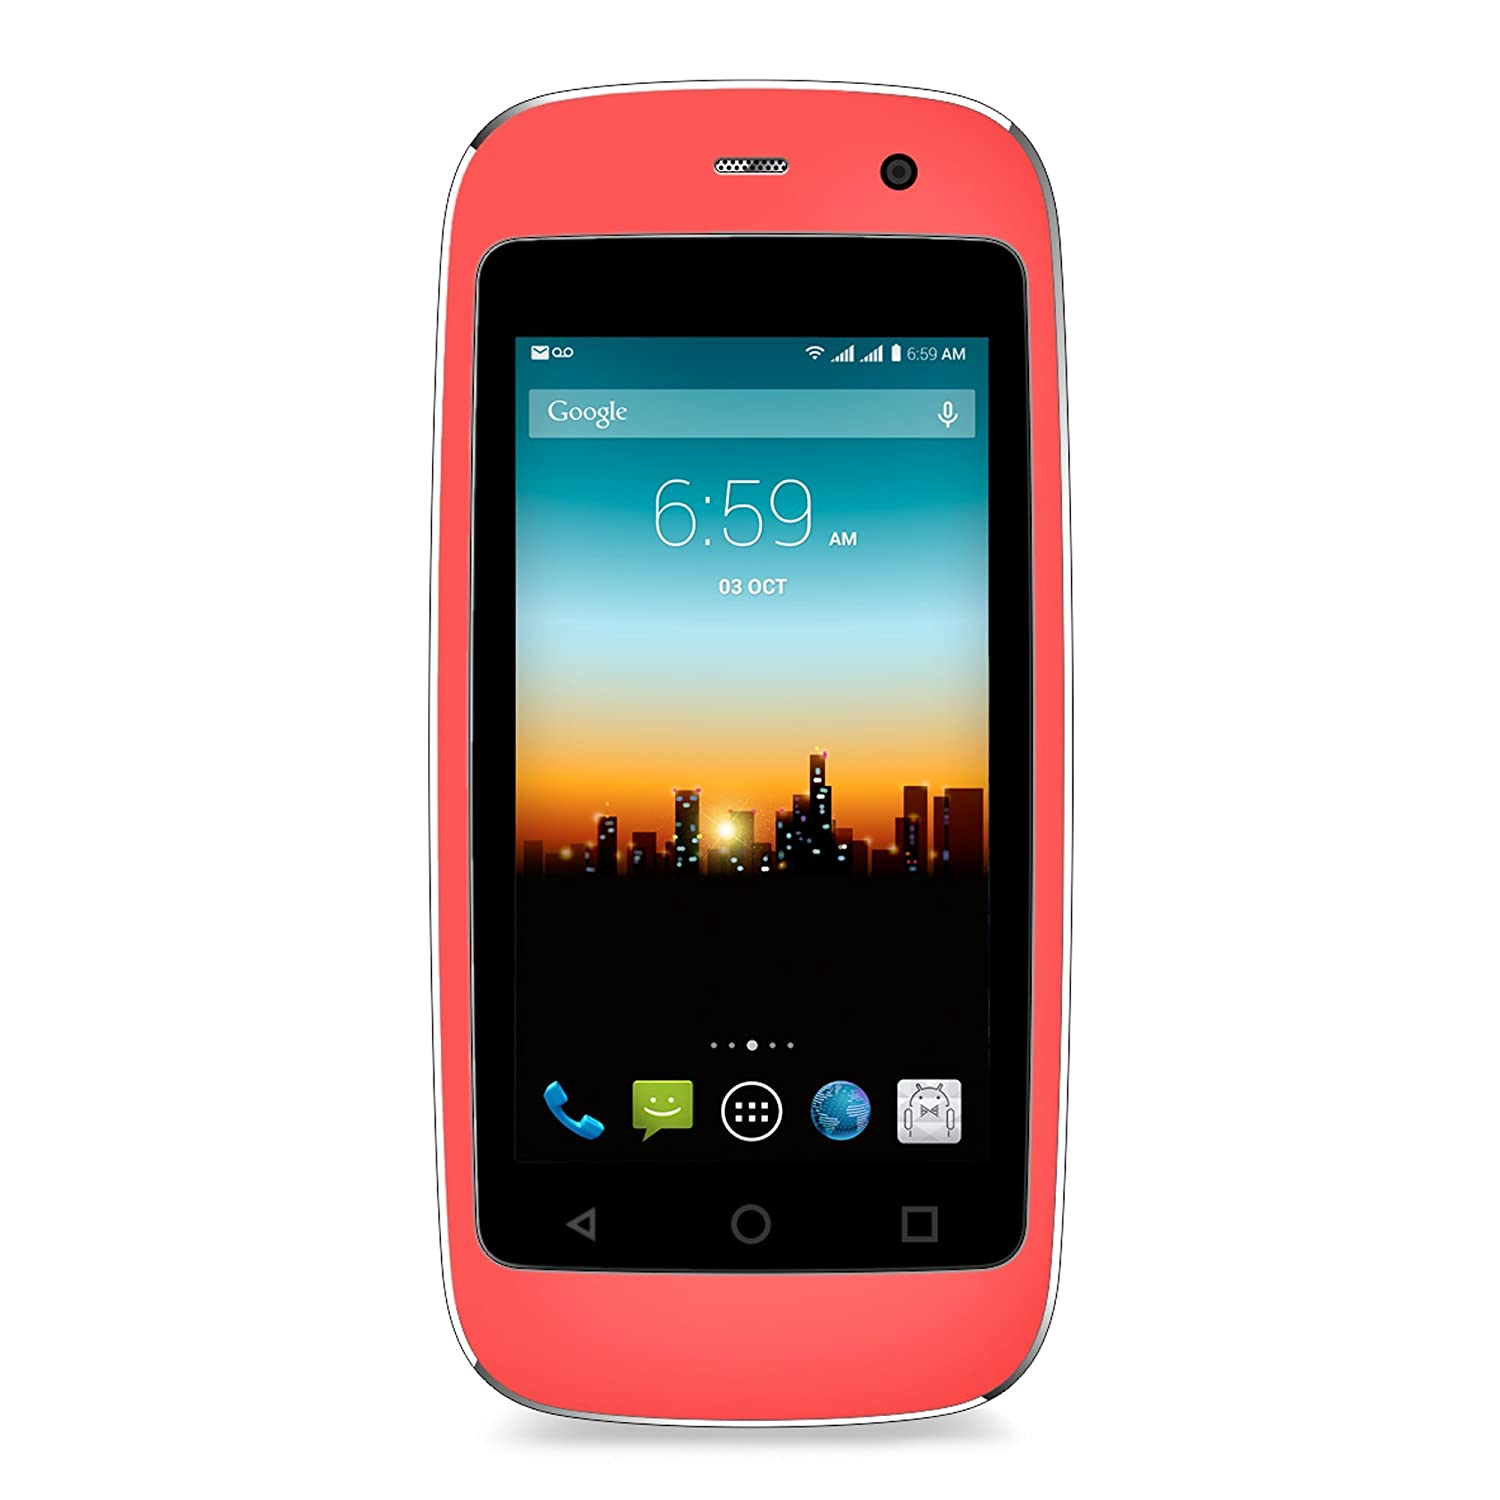 "POSH MOBILE MICRO X, The Smallest Smartphone in the World, ANDROID UNLOCKED 2.4"" GSM SMARTPHONE with 2MP Camera and 4GB of Storage. 1 Year warranty. (MODEL#: S240 PINK)"